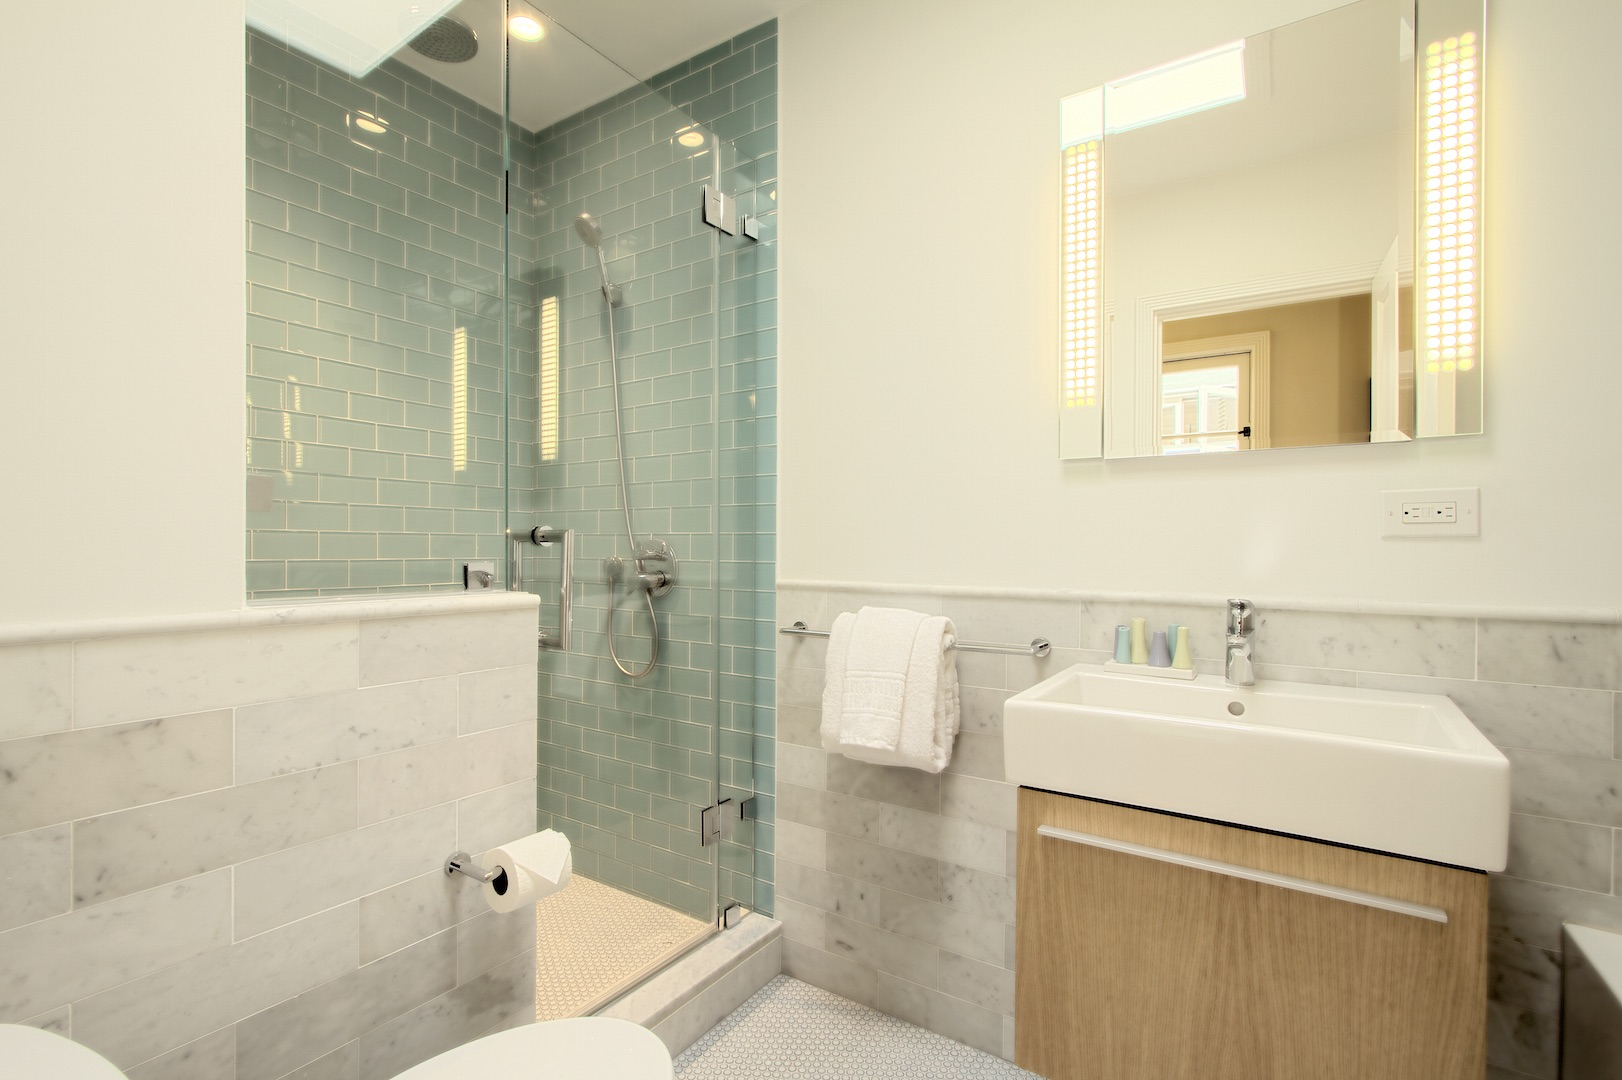 Marble bath showcased with glass tile shower enclosure